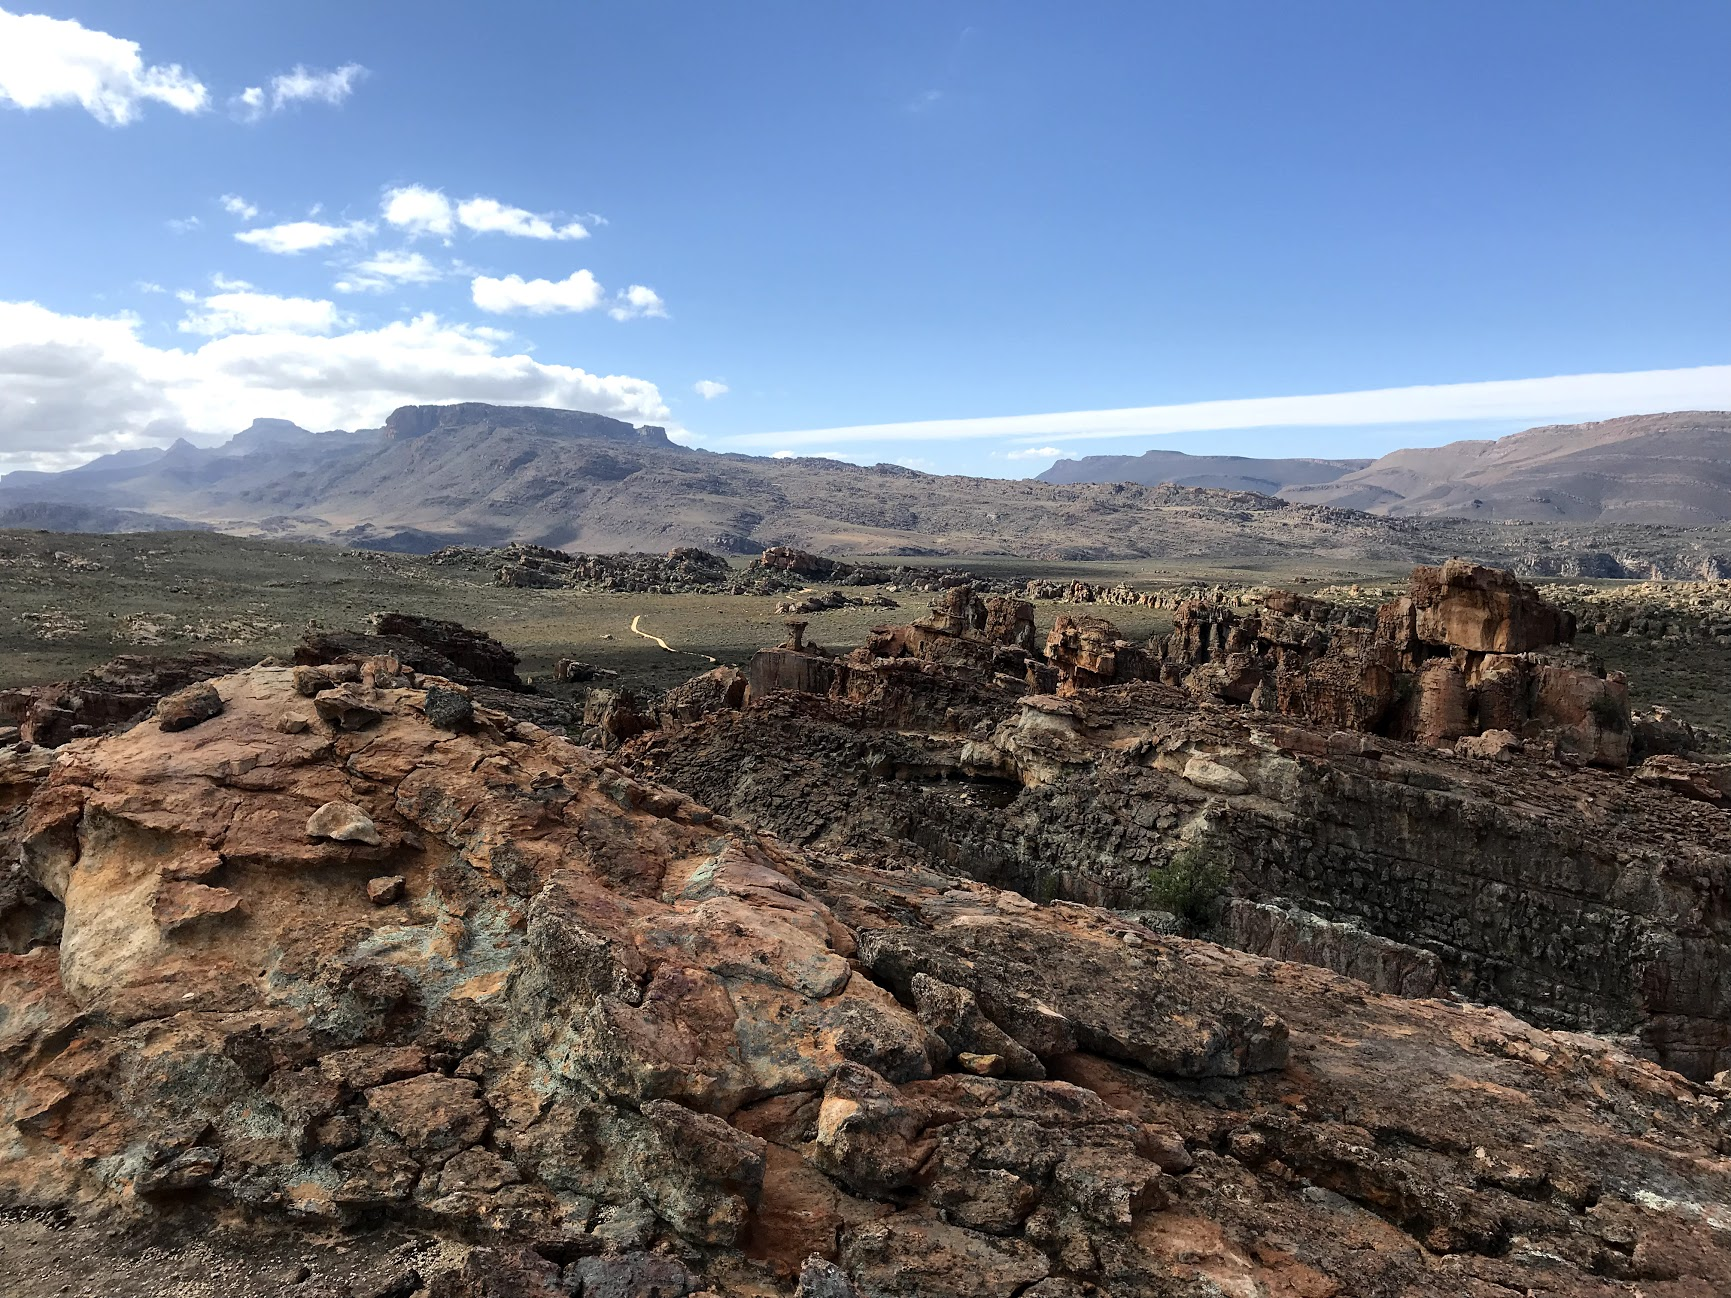 The Cederberg Mountains